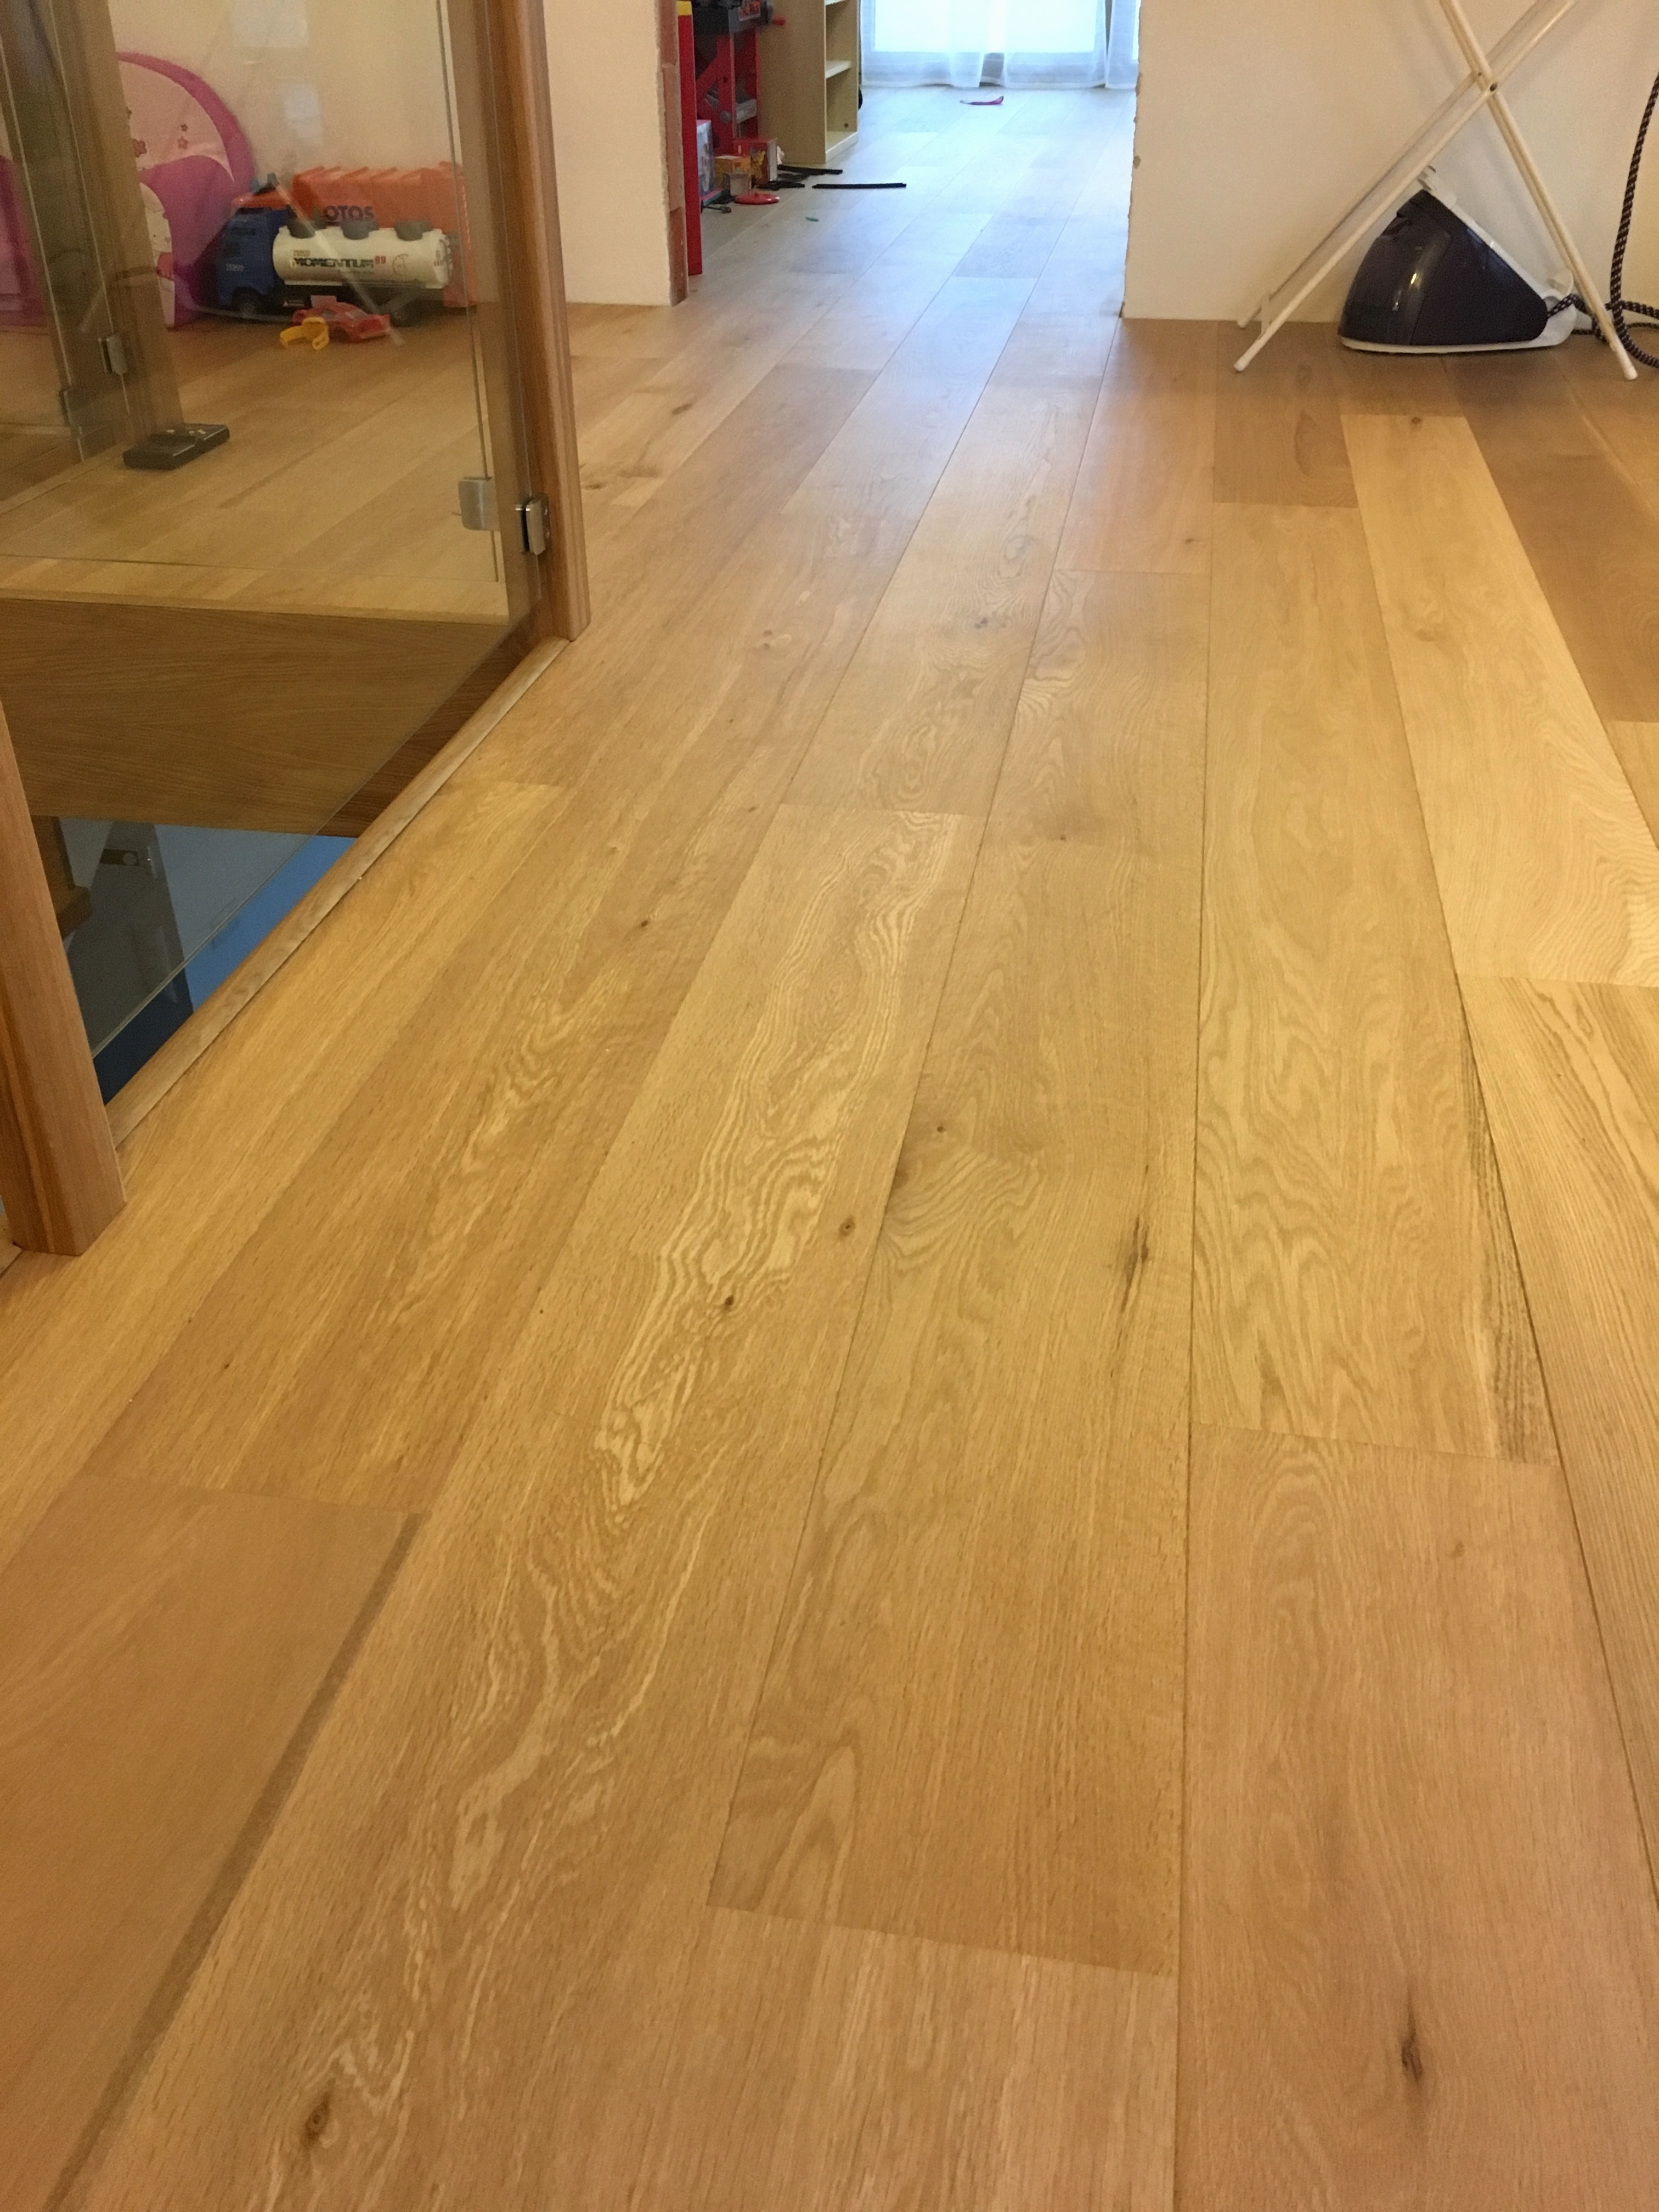 cheap hardwood flooring nashville tn of 17 awesome what to use to clean hardwood floors image dizpos com intended for 50 best how to refinish hardwood floors without sanding pics 50